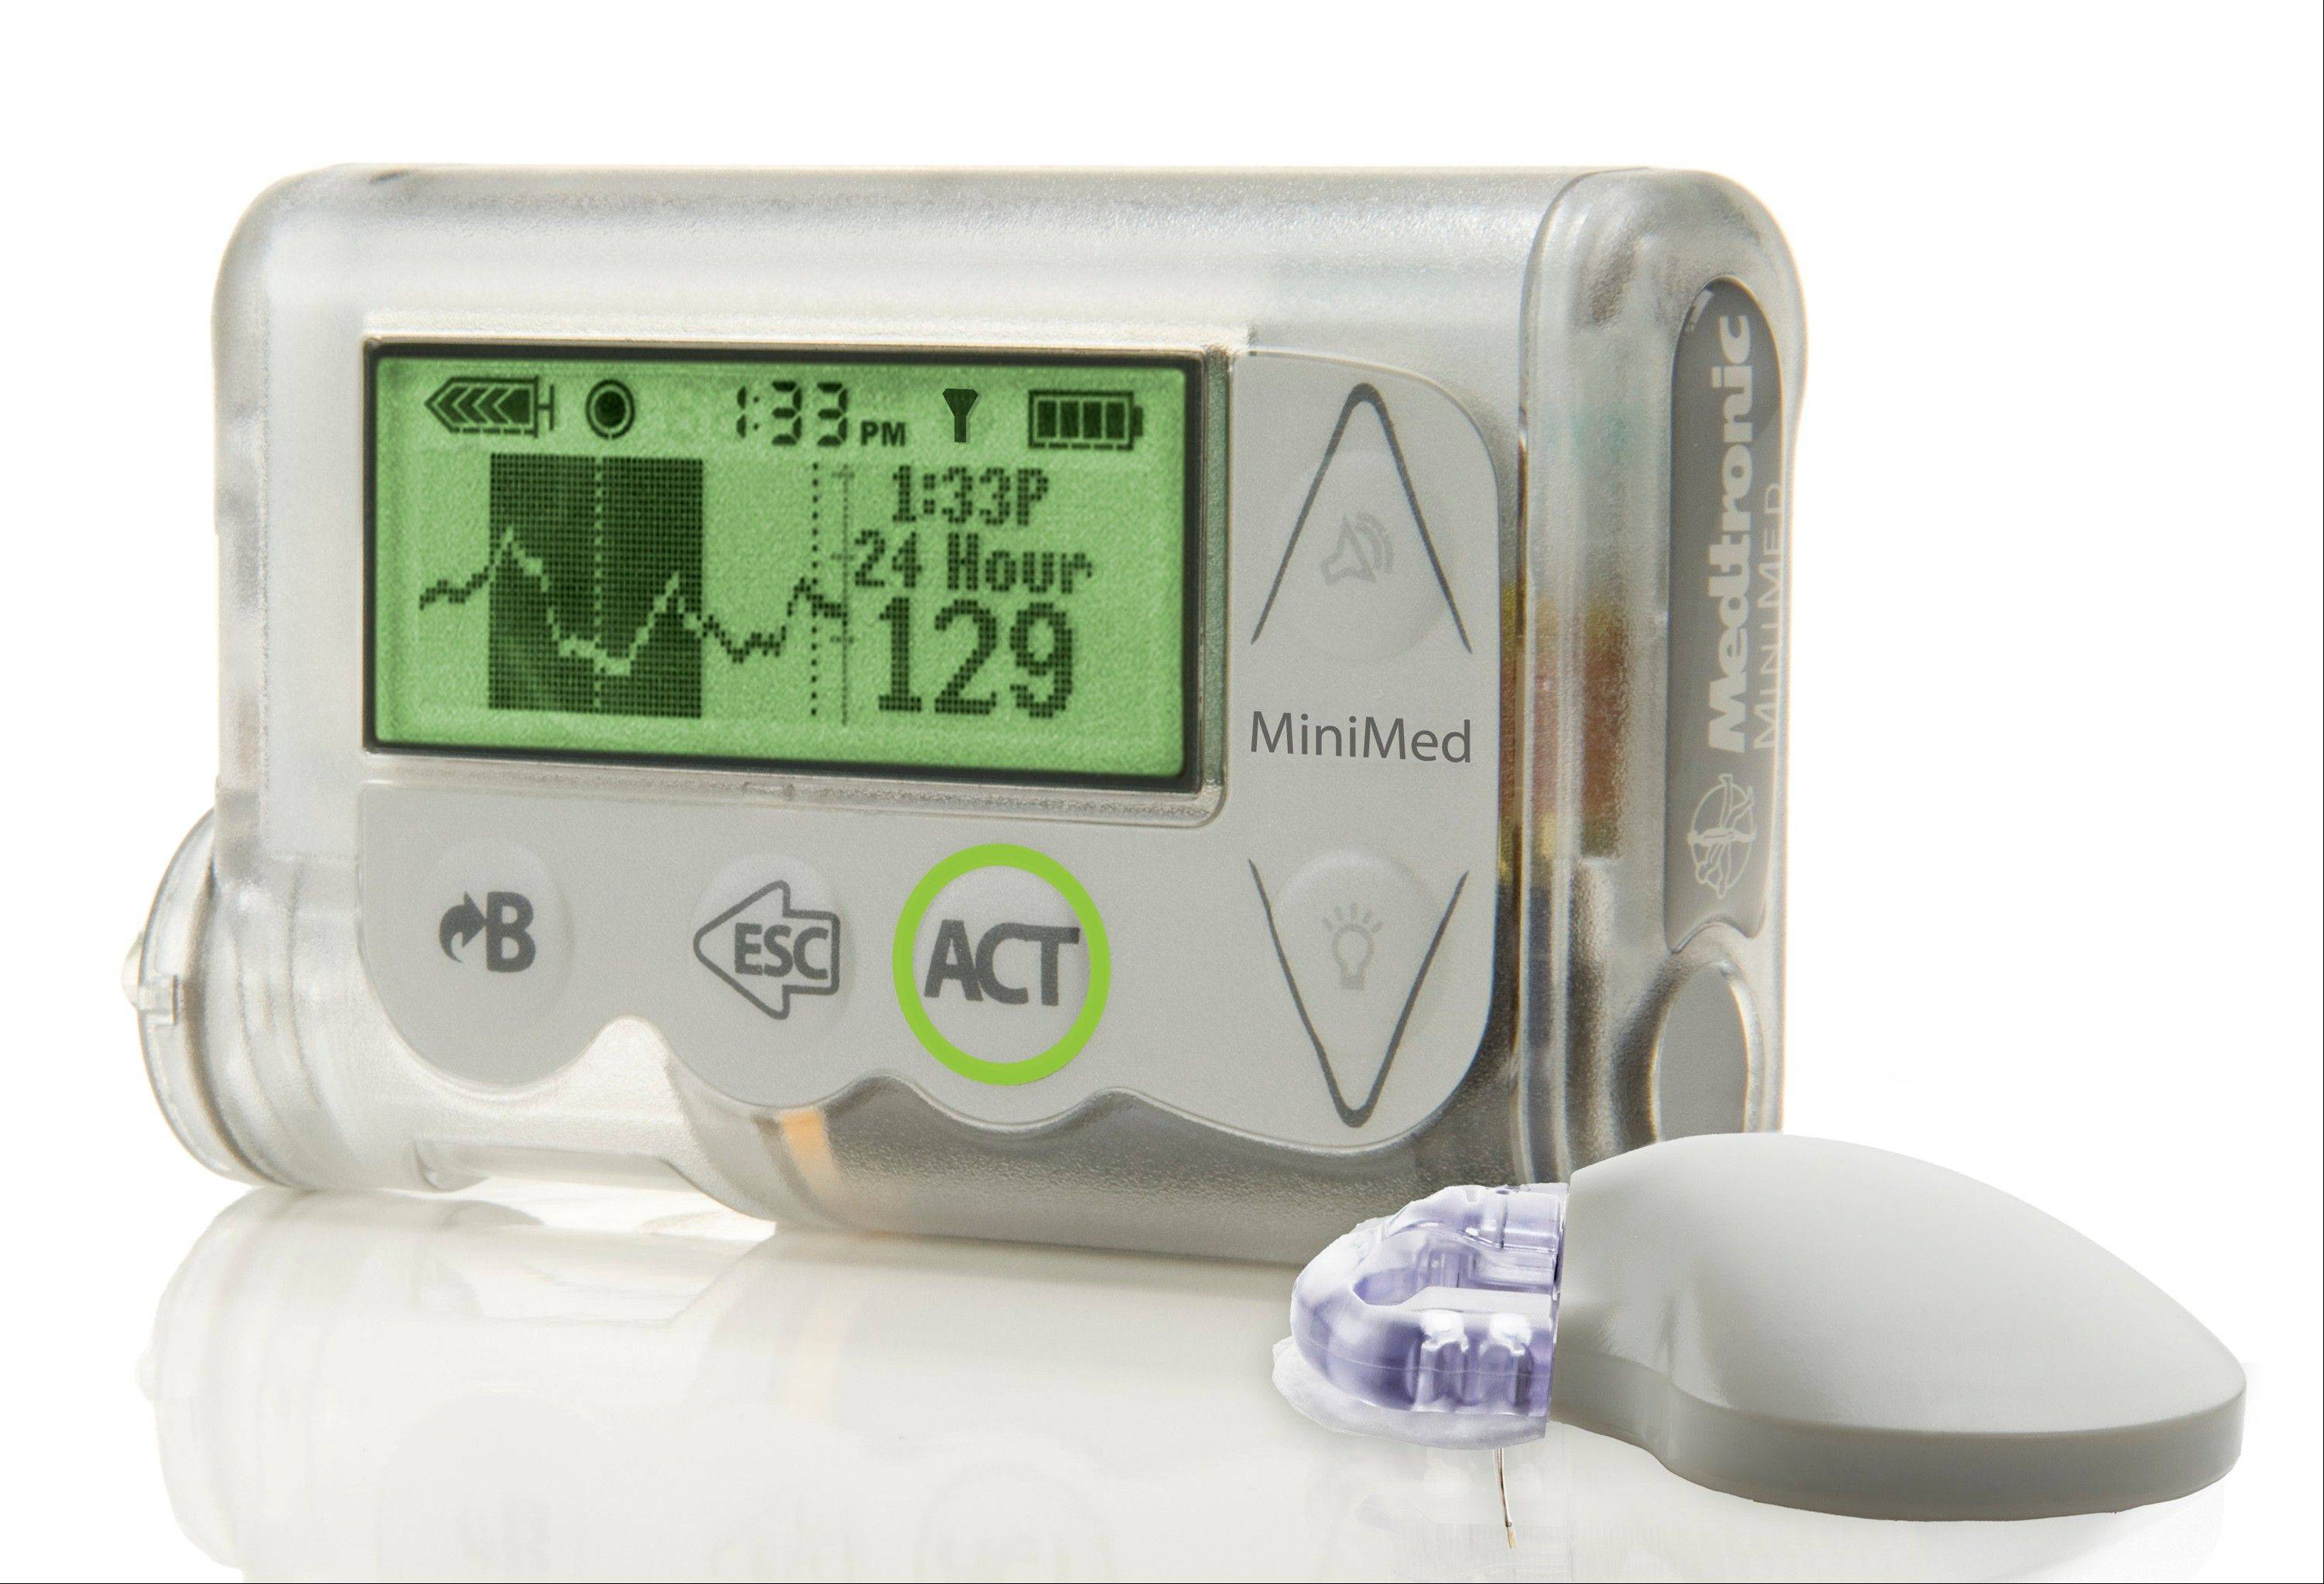 Also updated at the American Diabetes Association conference in Chicago was the MiniMed Integrated System device, which doctors are reporting as a major step toward an �artificial pancreas.� The device constantly monitors blood sugar and automatically supplies insulin as needed.